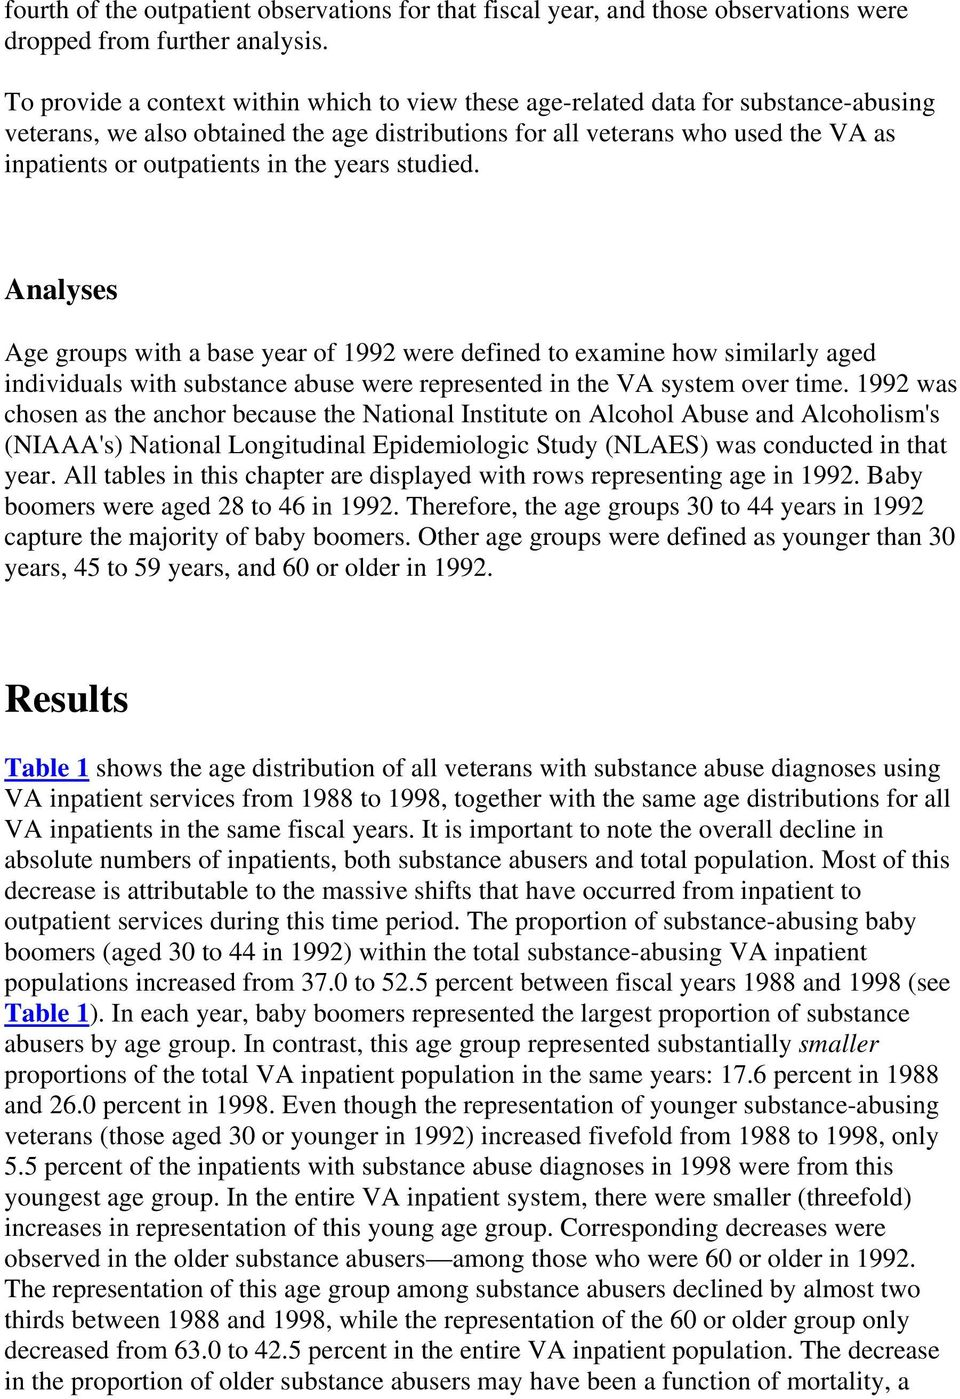 in the years studied. Analyses Age groups with a base year of 1992 were defined to examine how similarly aged individuals with substance abuse were represented in the VA system over time.